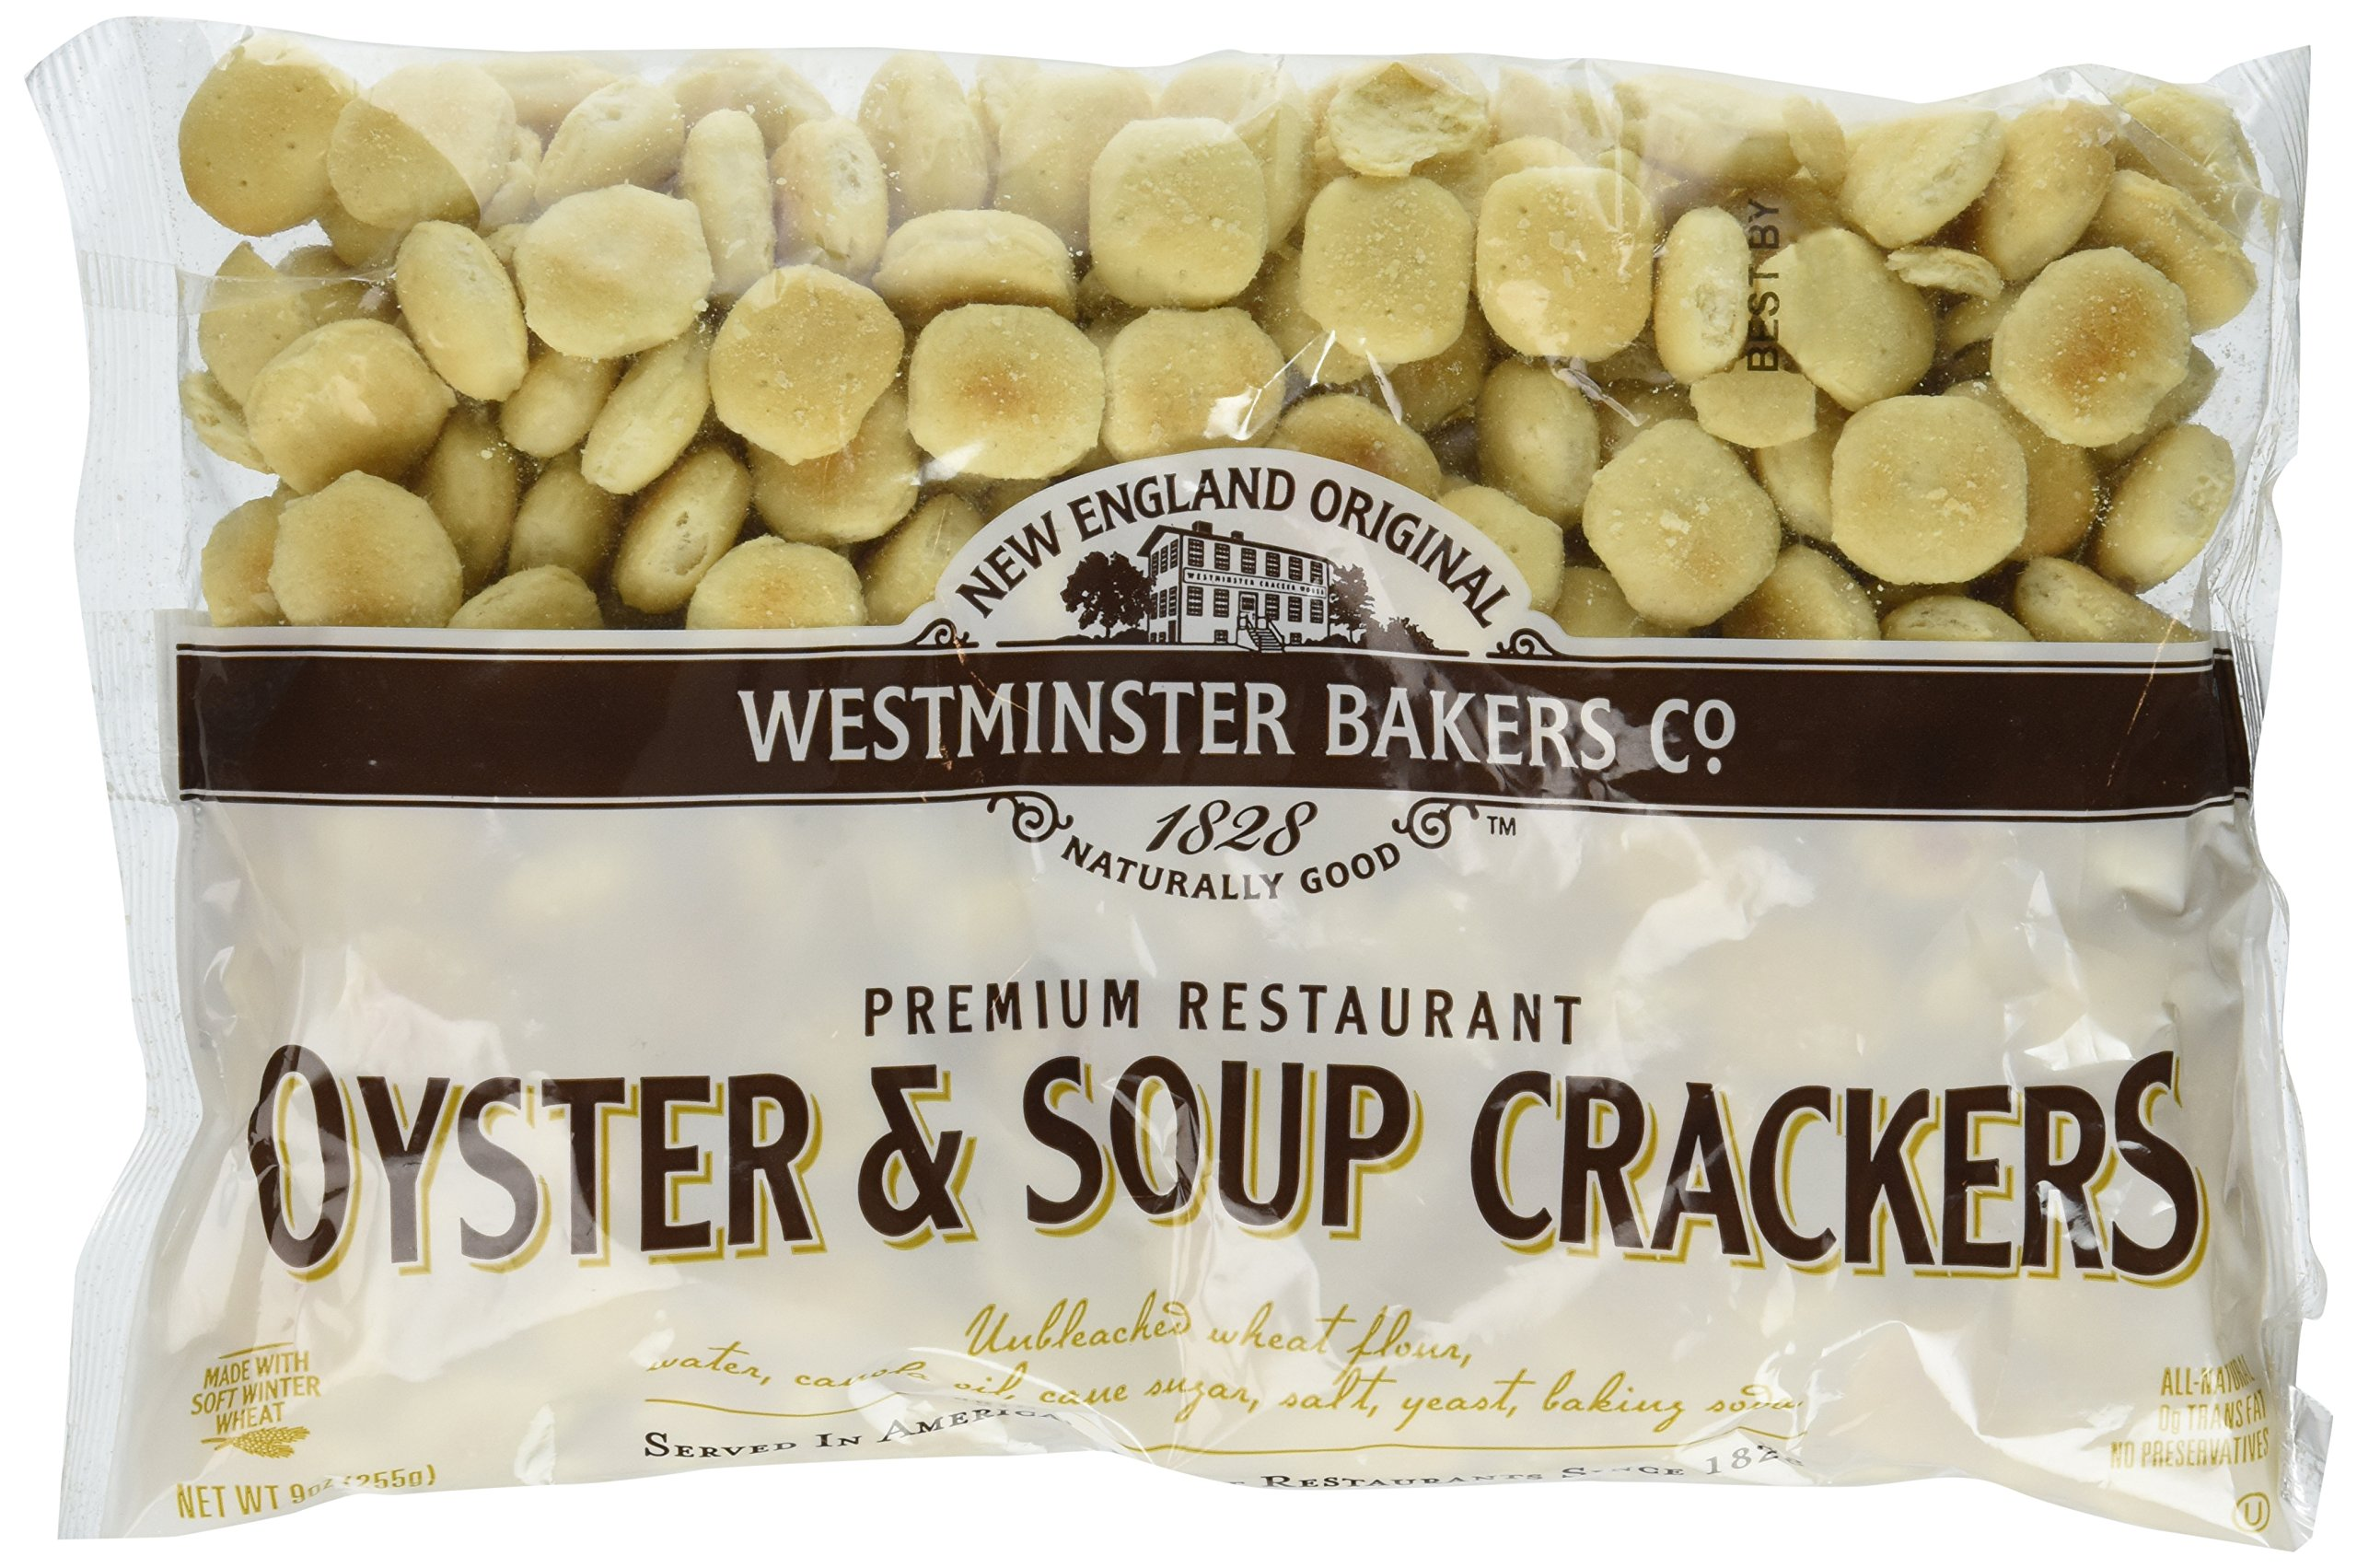 New England Original Westminster Bakeries Oyster & Soup Crackers (3 Pack) by Westminster Bakers